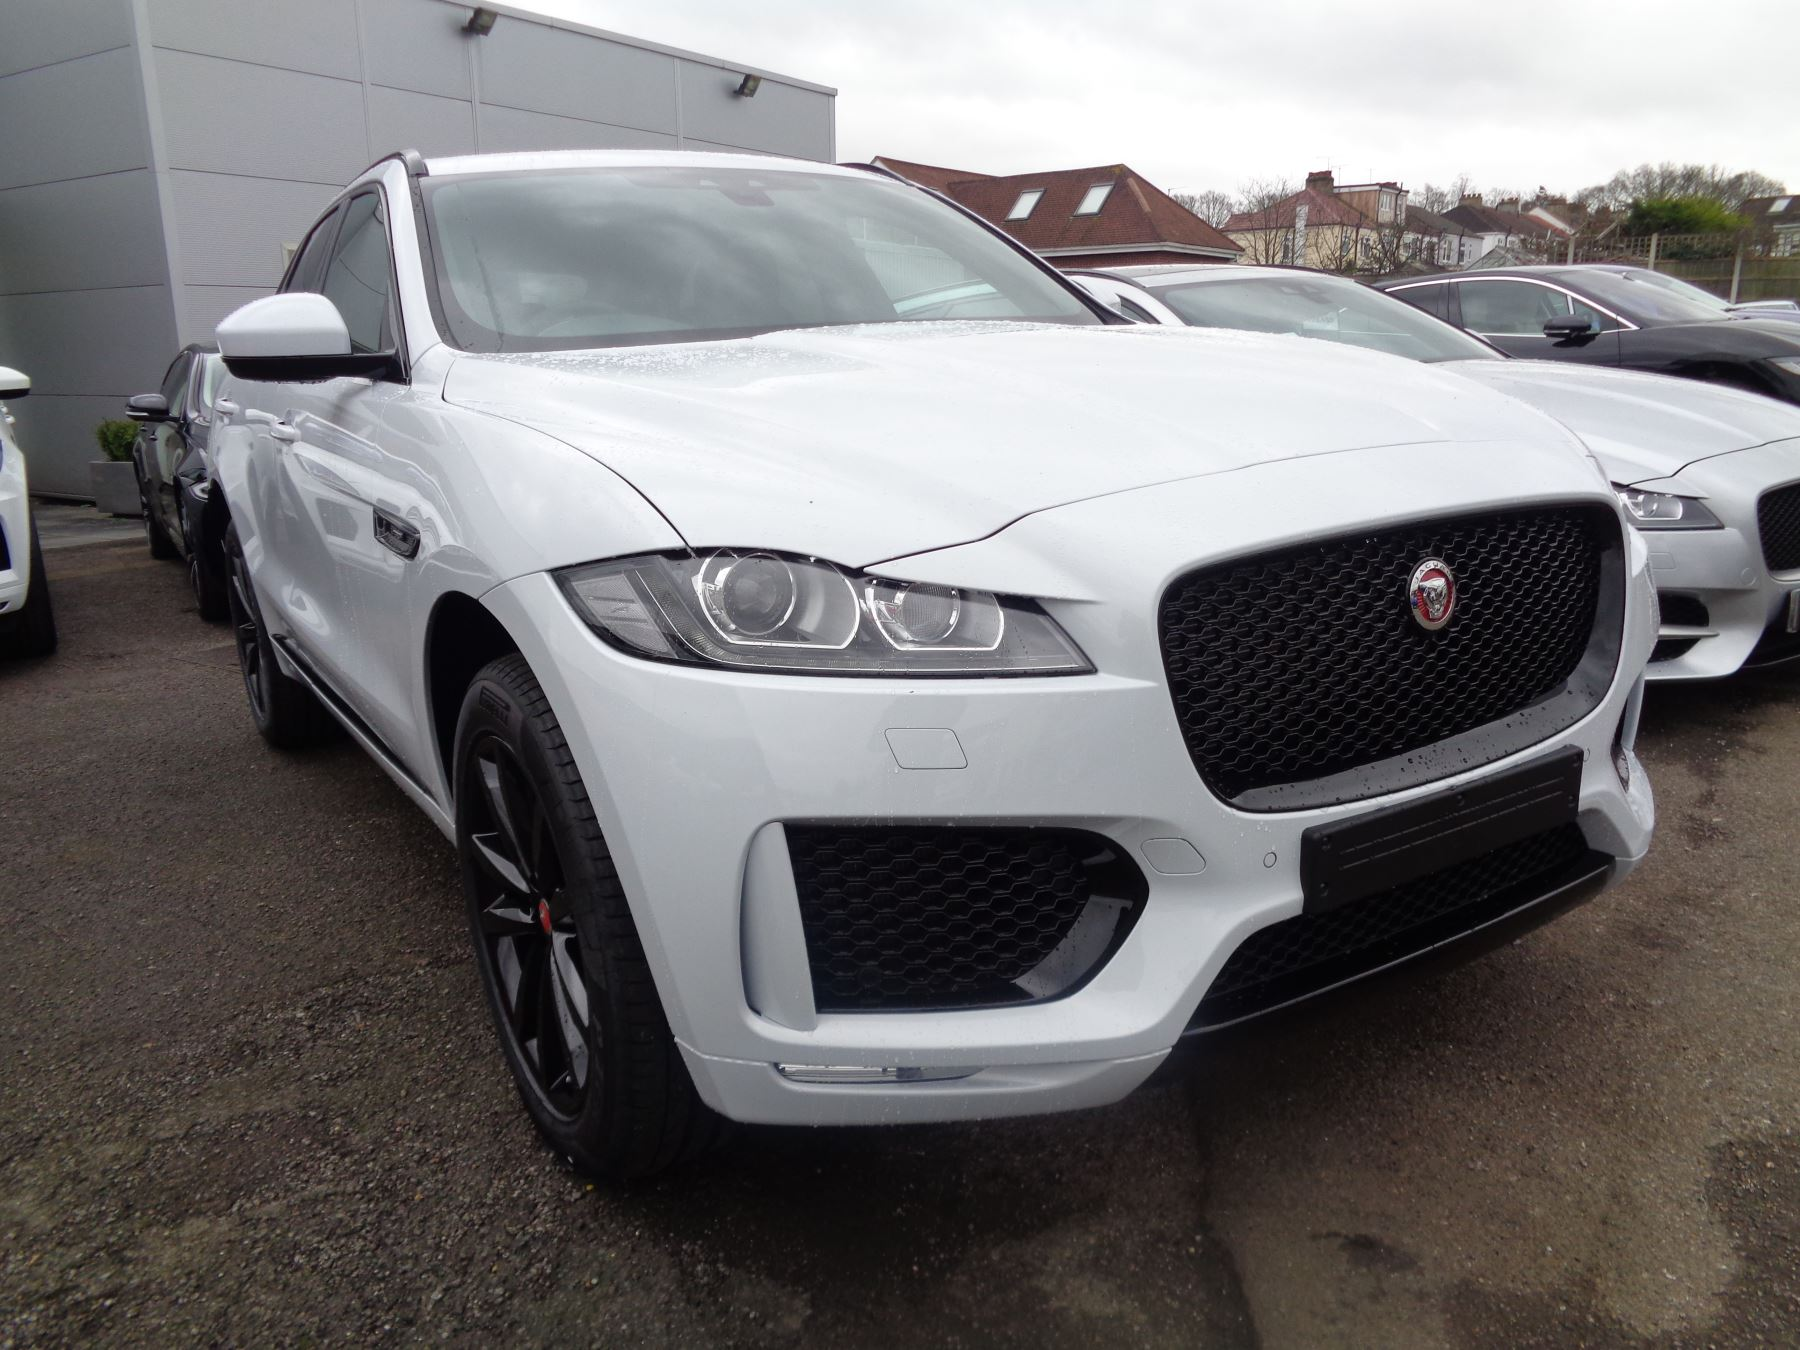 Jaguar F-PACE 2.0 250 Chequered Flag AWD SPECIAL EDITIONS SAVE 3510! Automatic 5 door Estate (2020)